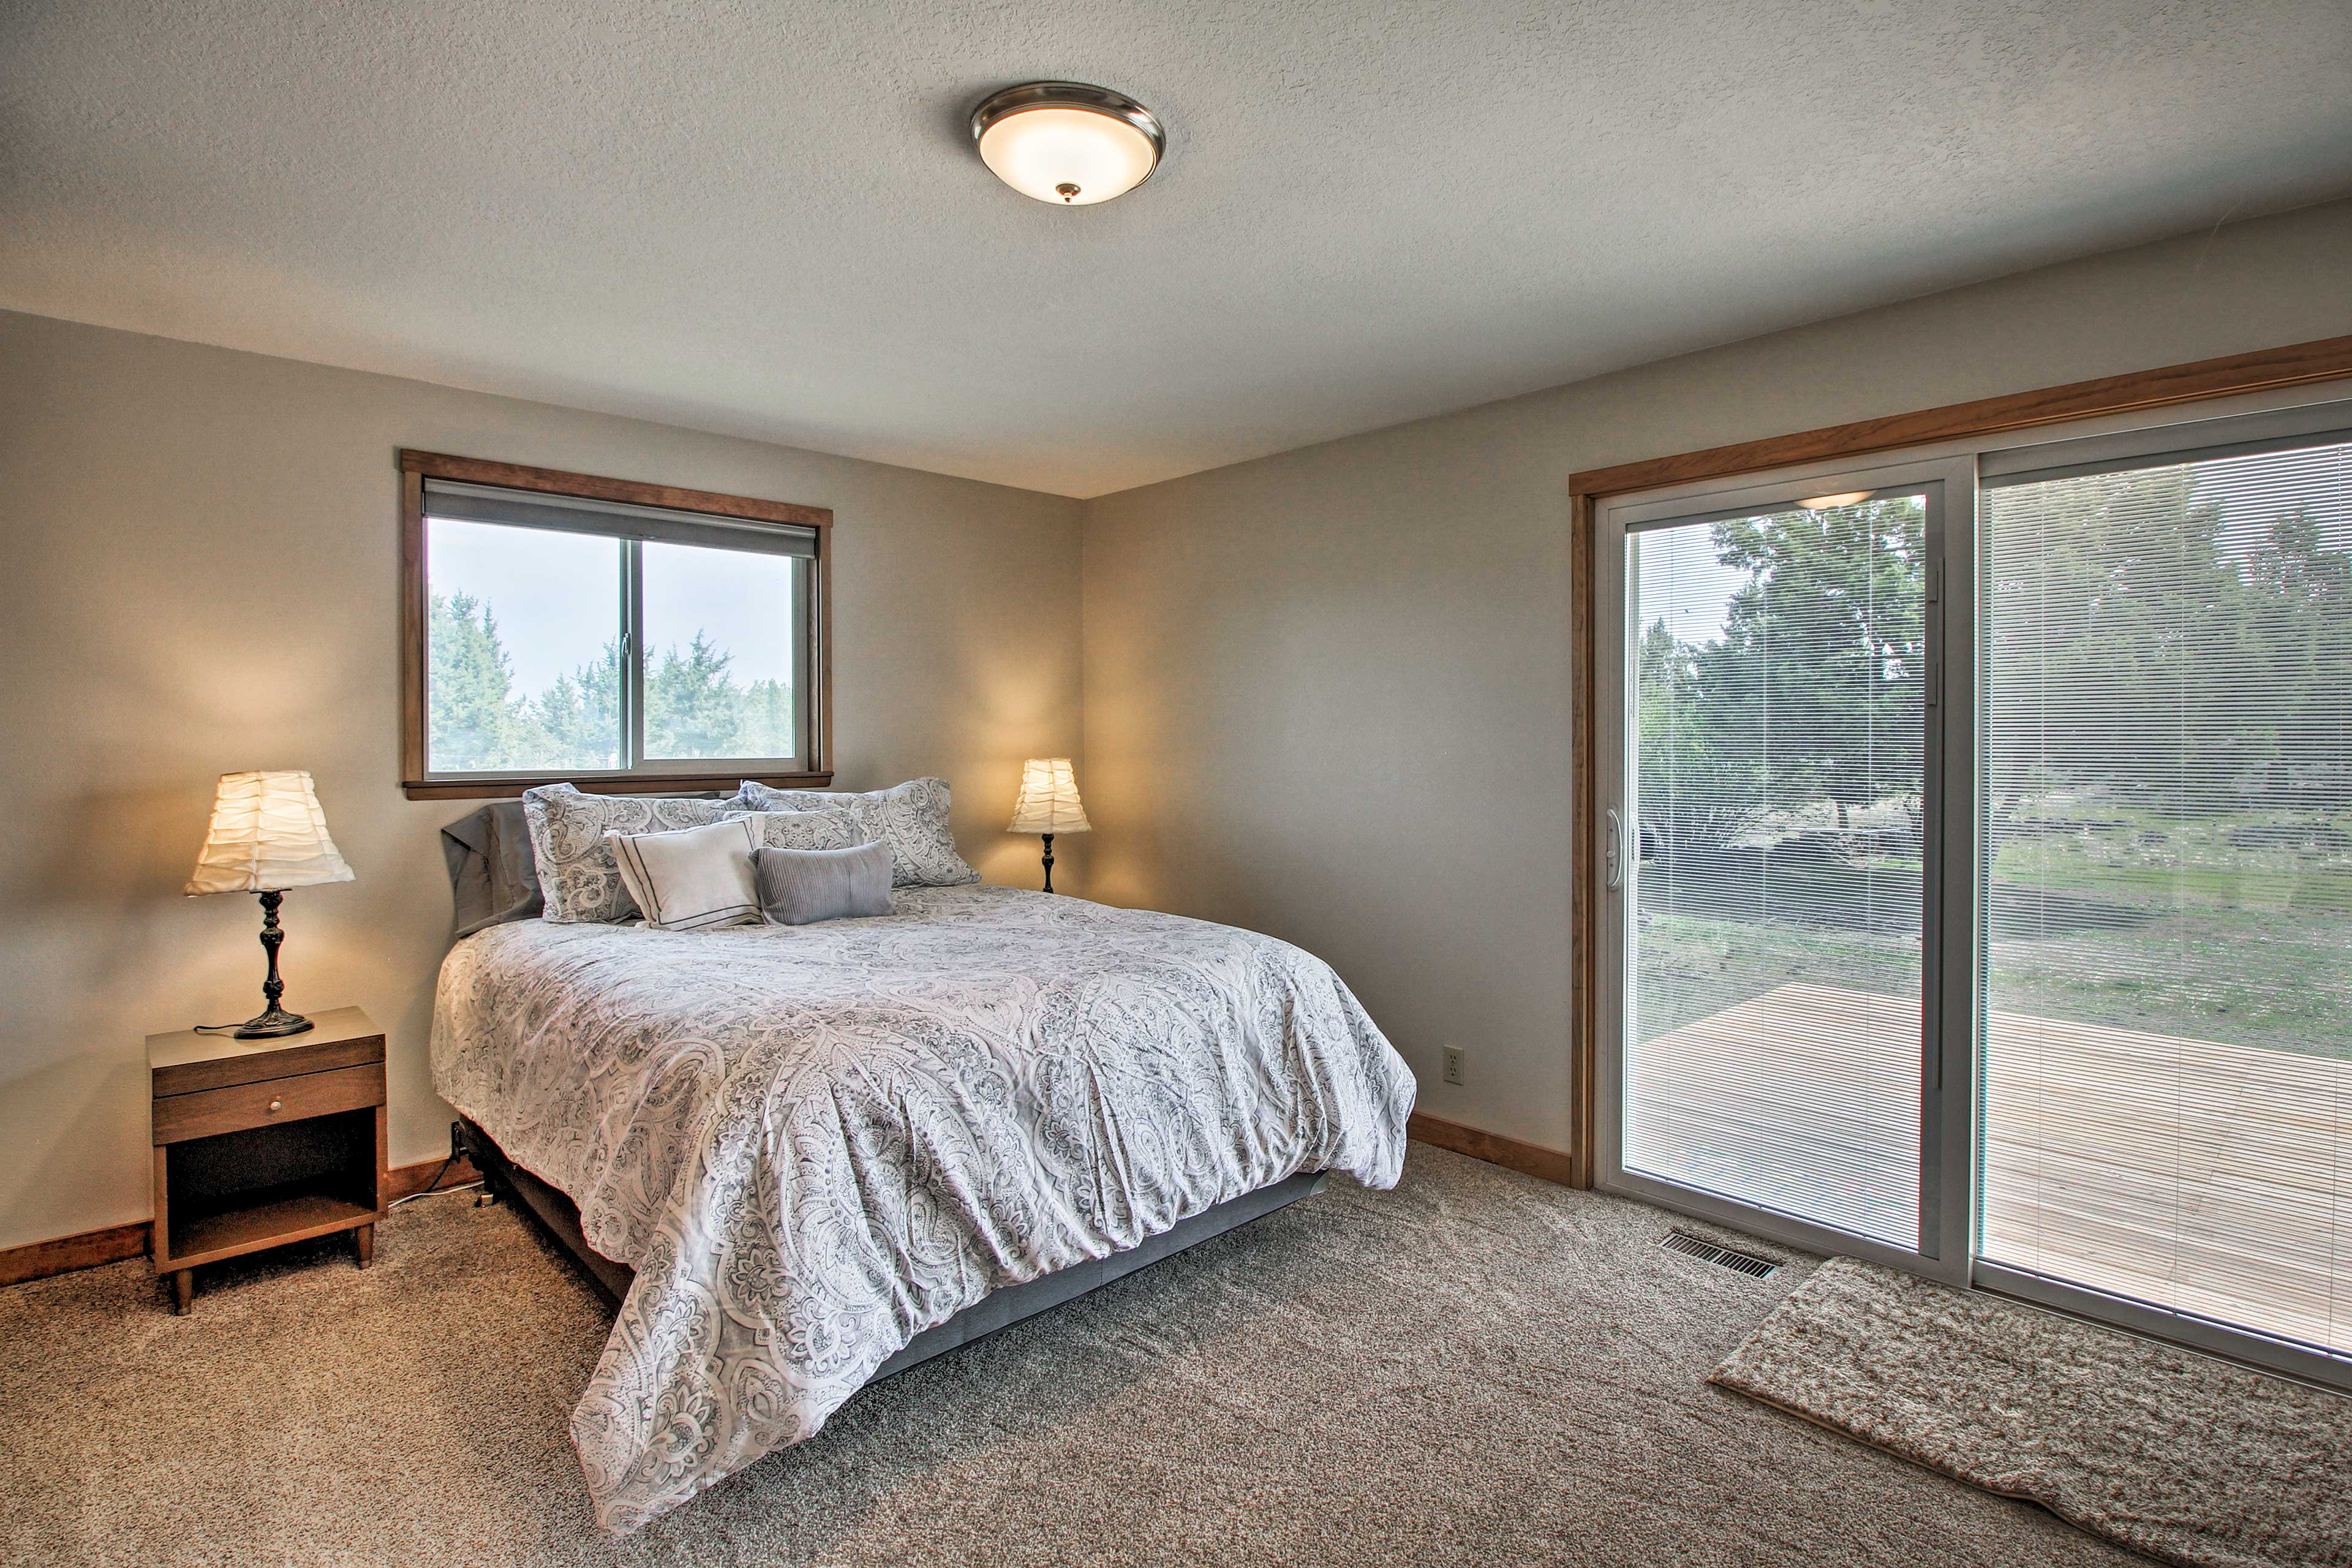 The first bedroom has access to one of the 2 decks and a queen-sized bed.